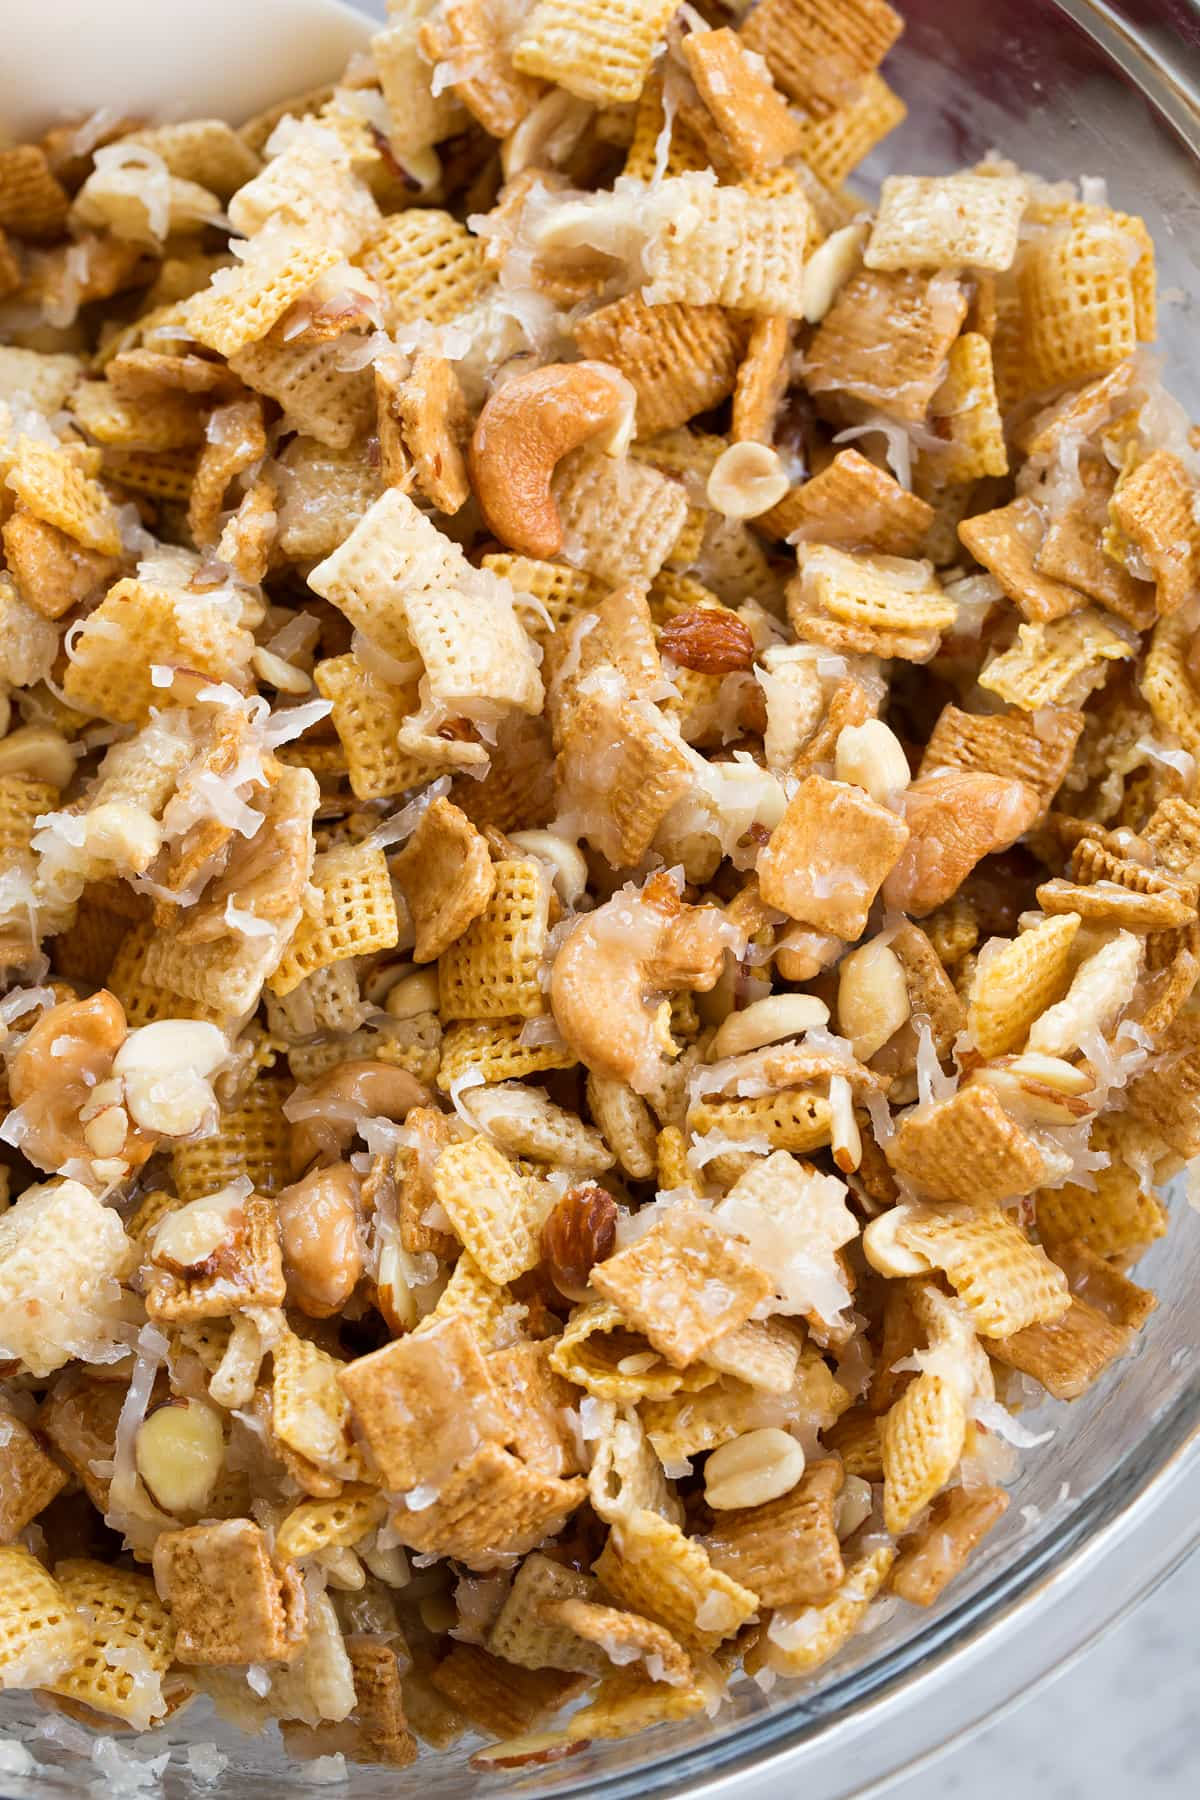 Overhead image of chex mix in a glass bowl.